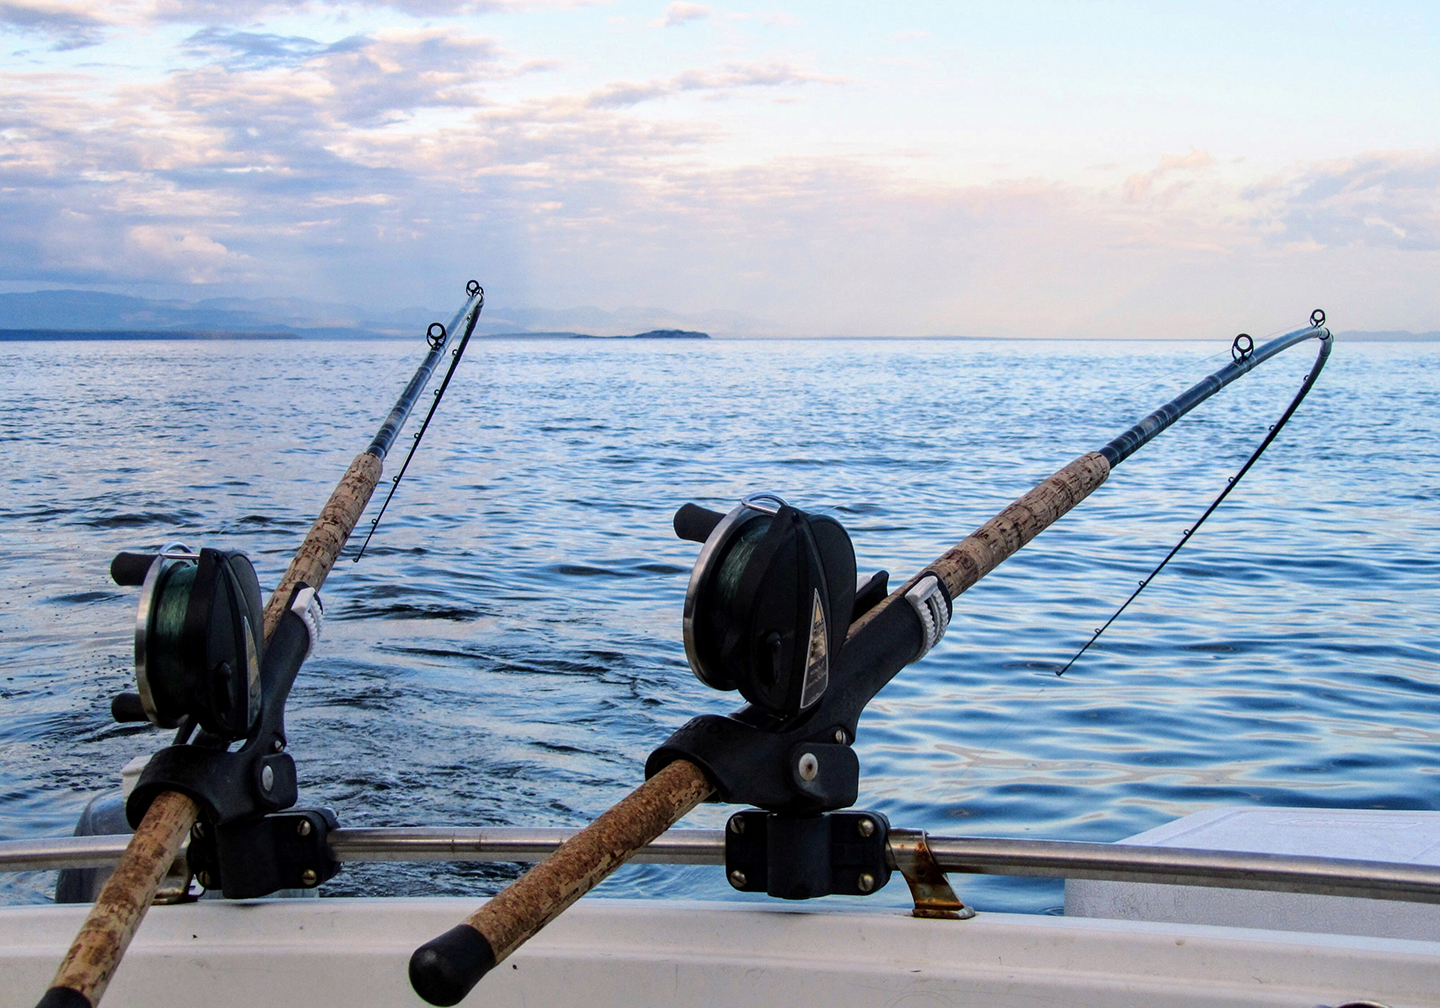 Two fishing rods secured on the side of a boat at sea. The rods are bending from a fish on the line.